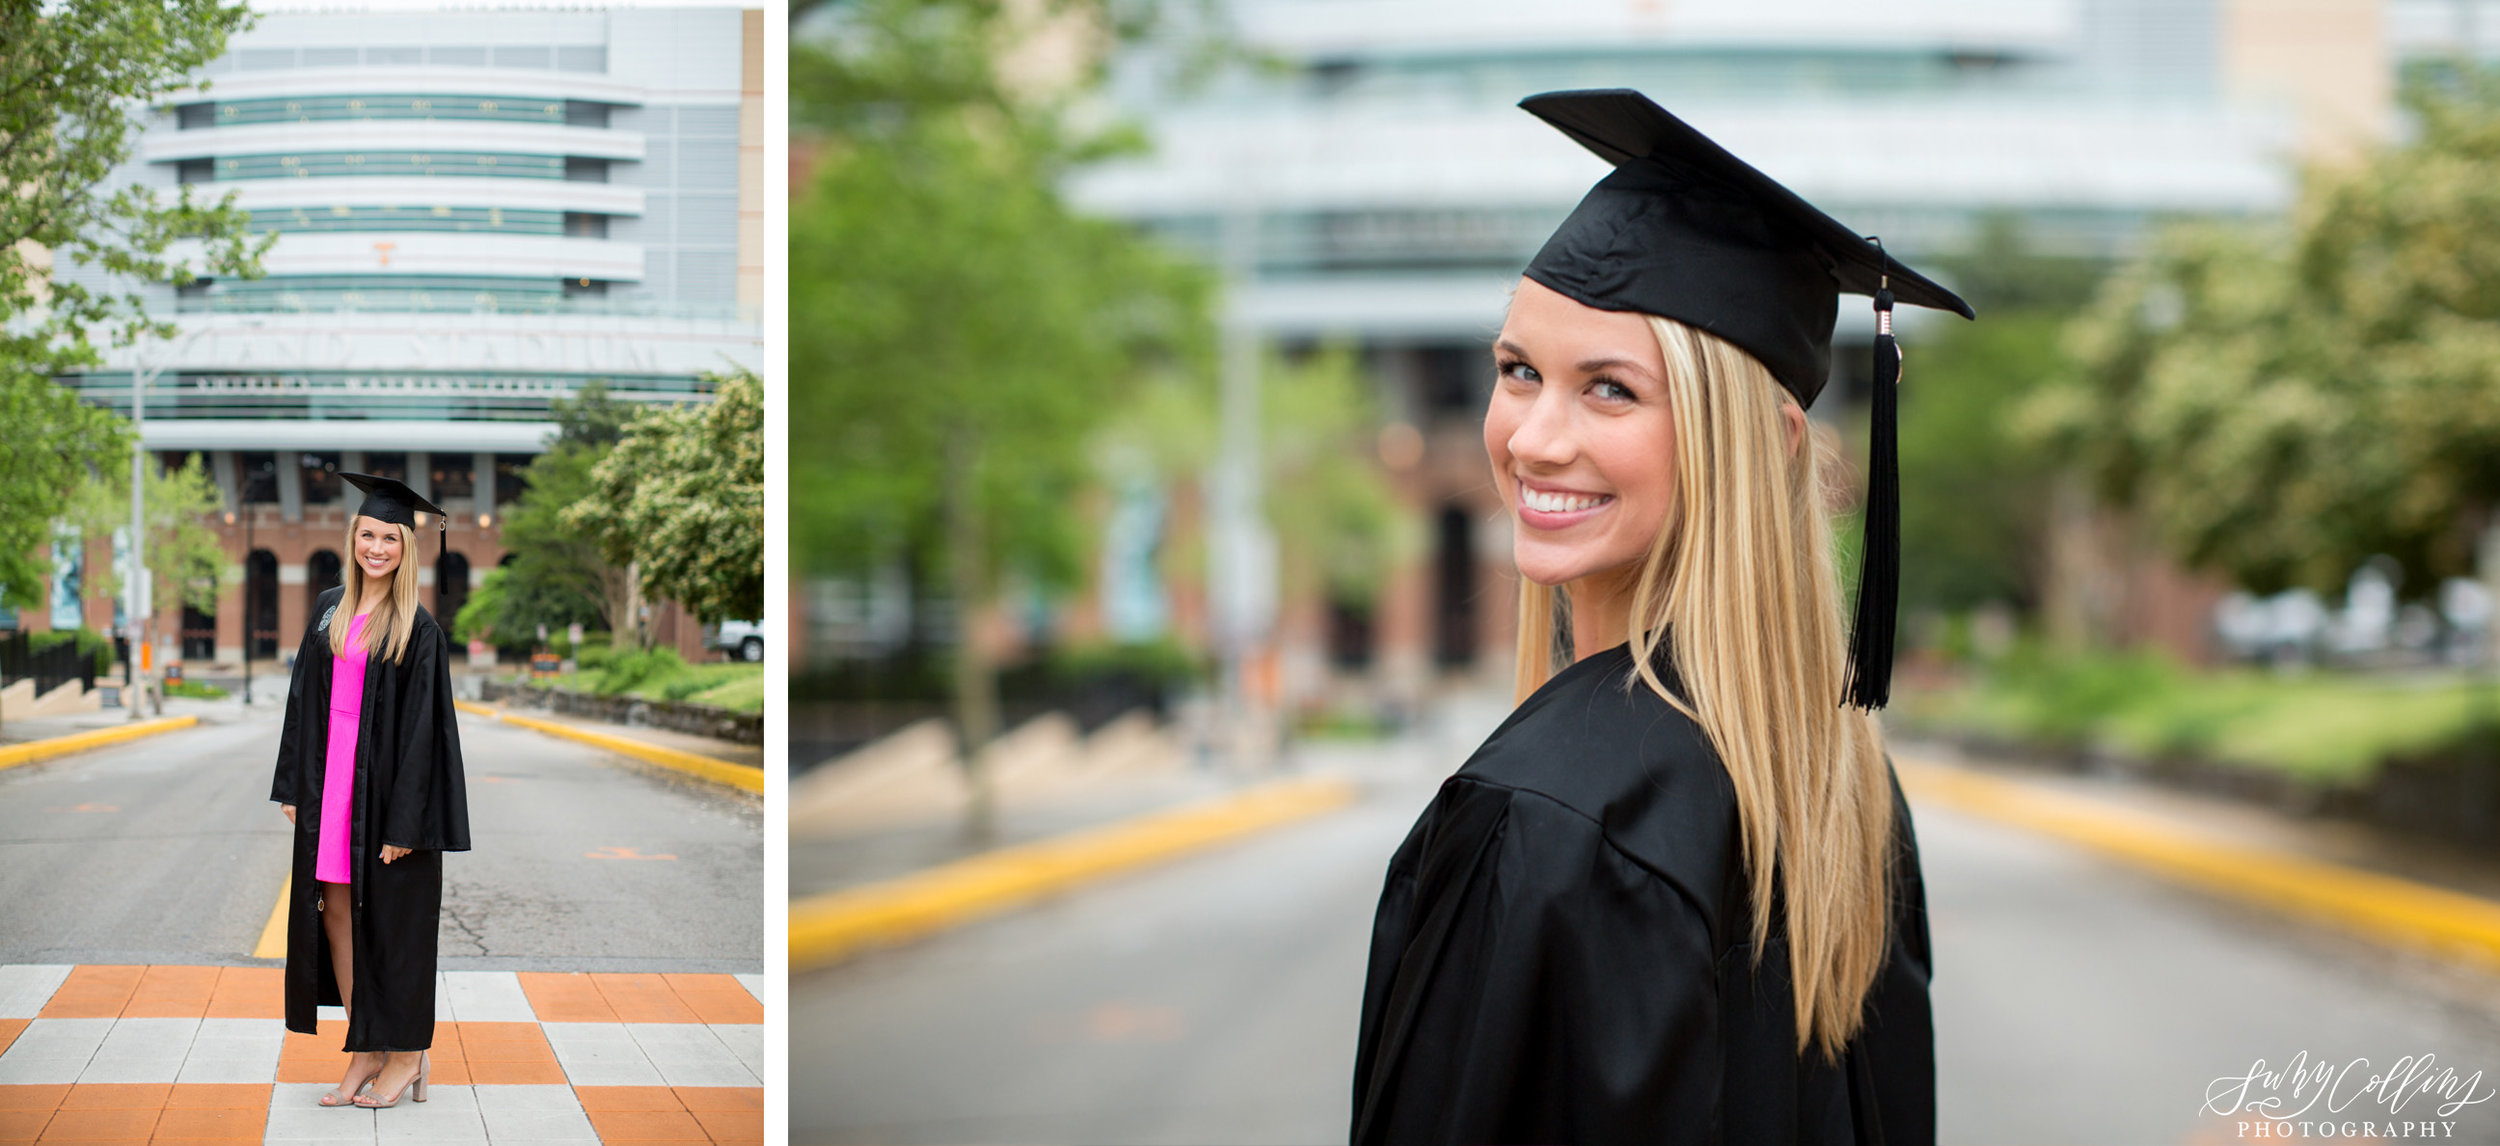 female, senior, portraits, graduate, university of Tennessee, Knoxville, poses, cherry blossoms, outfits, ideas, college, inspiration, natural light, light and airy, vibrant, colorful, bright, outdoors, head shots, sunset, volunteers, cap and gown